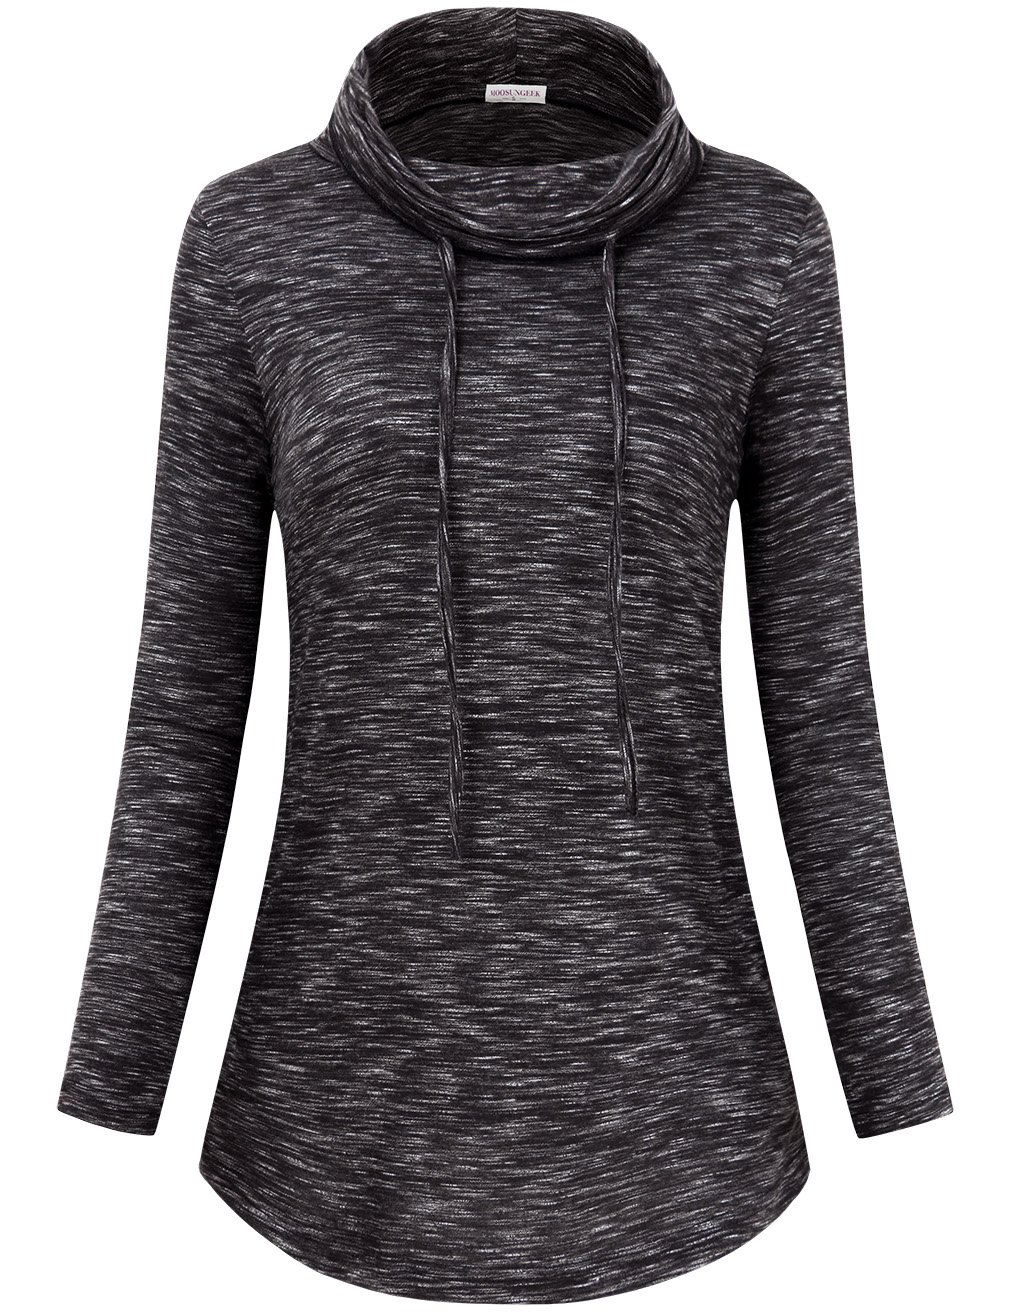 Faddare Activewear Long Sleeve Tops for Women,Cowl Neck Shirt,Black White XL by Faddare (Image #1)